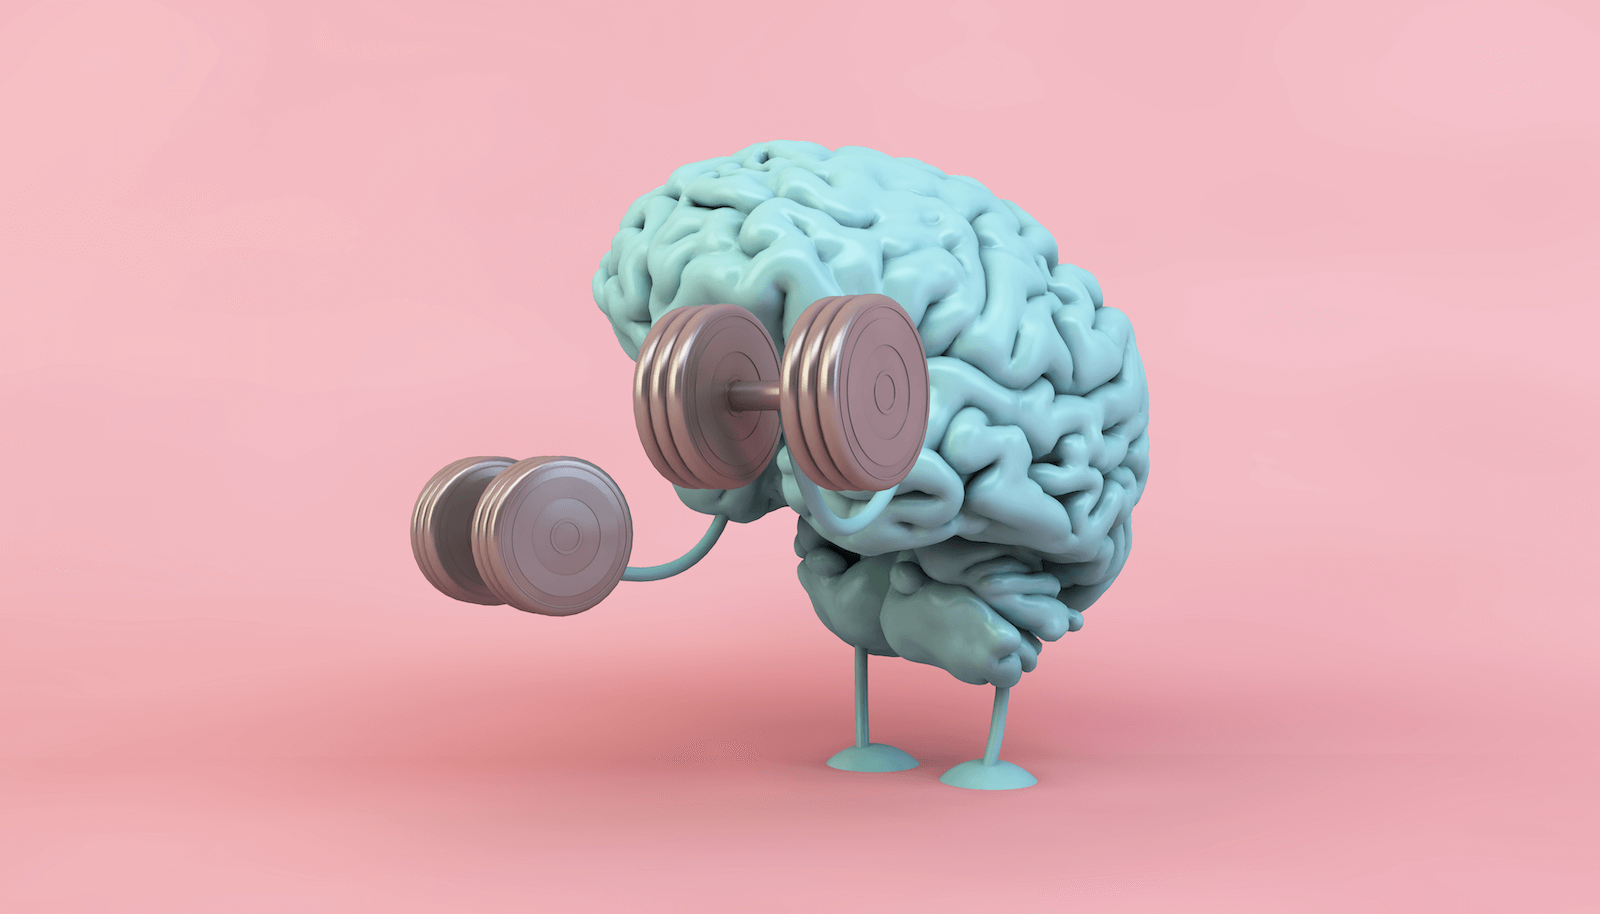 memory training: Model of the human brain holding two dumbbells against a pink background